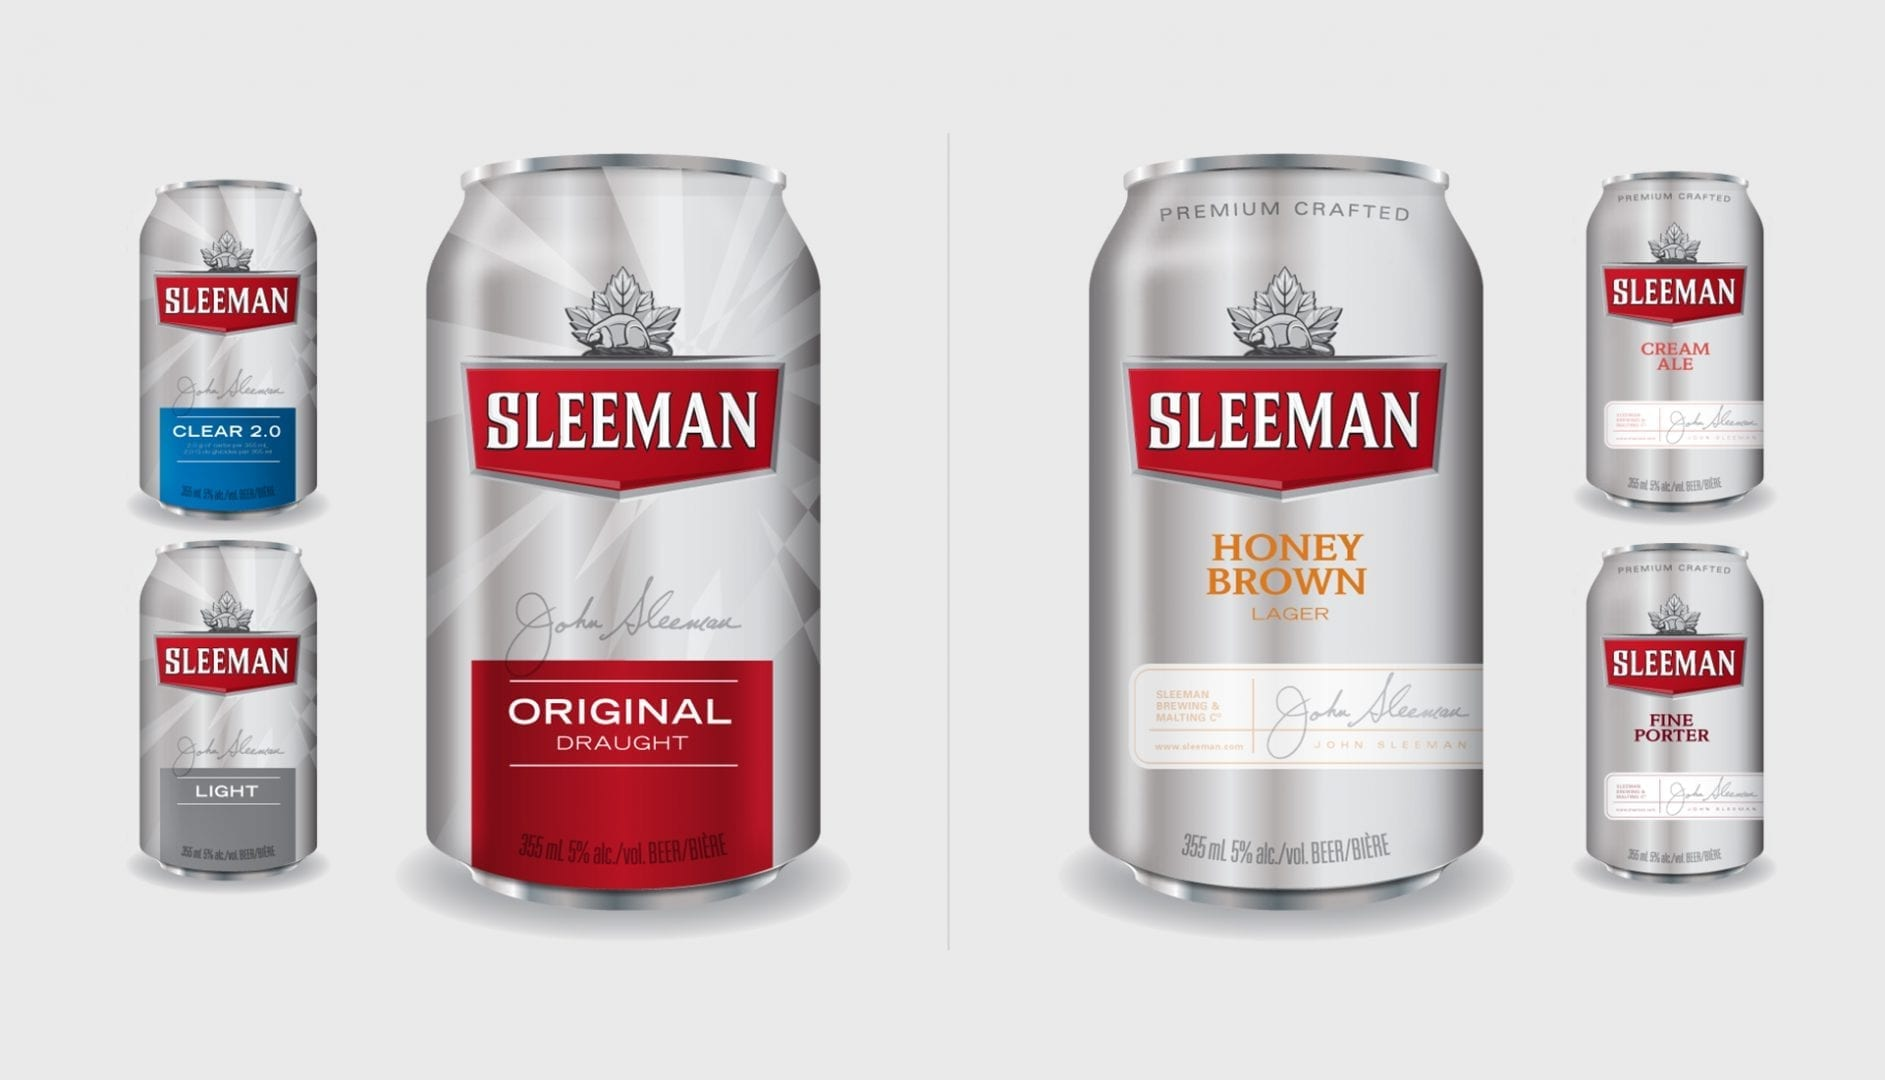 Sleeman beer can design concepts